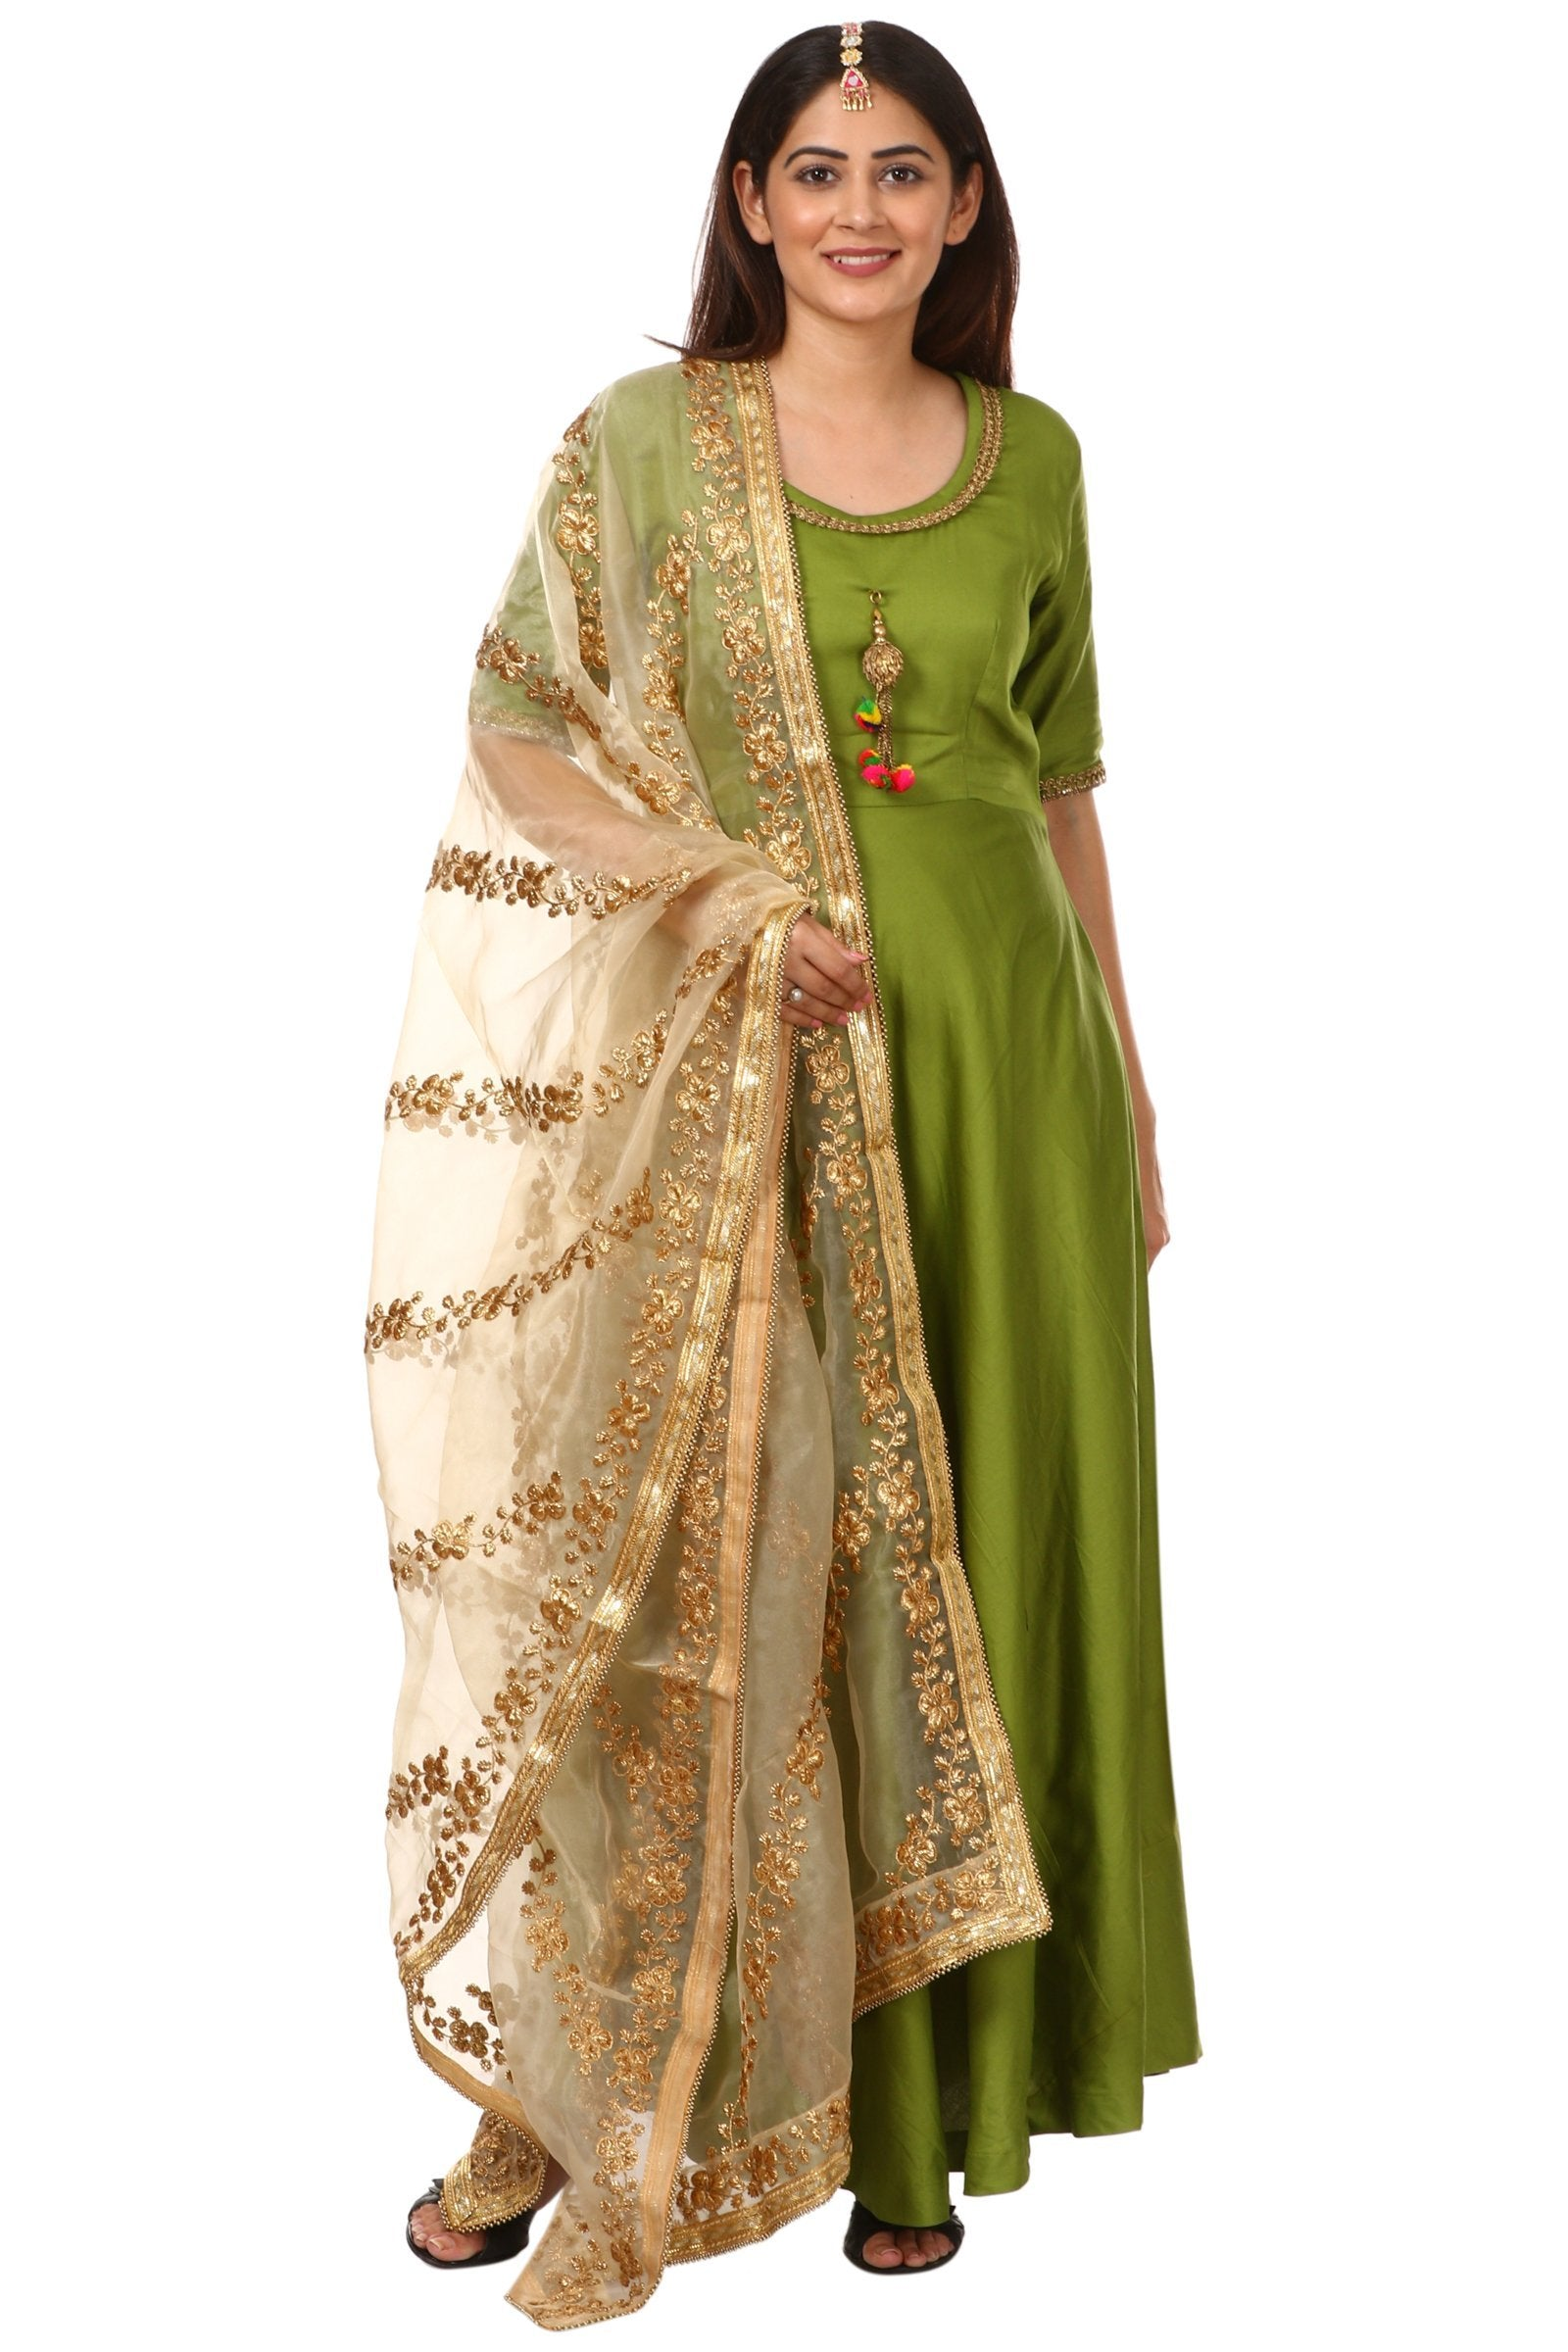 d95b7bfd0 Home   Products   Green Floor Length Kurti with Floral Gold Embroidered  Dupatta